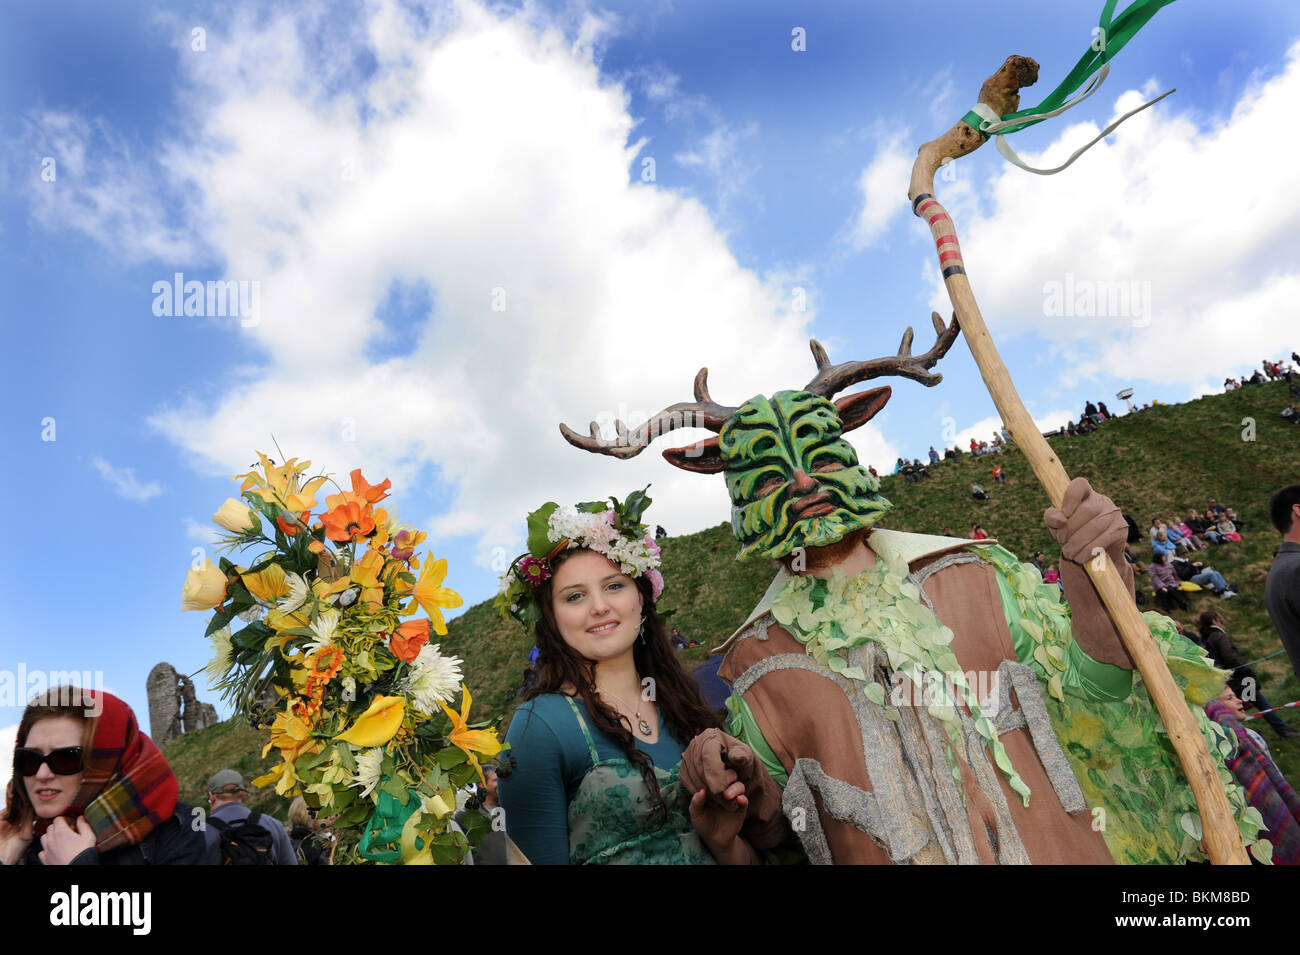 The Green Man of Clun and his May Day Queen at the Shropshire Village annual festival - Stock Image